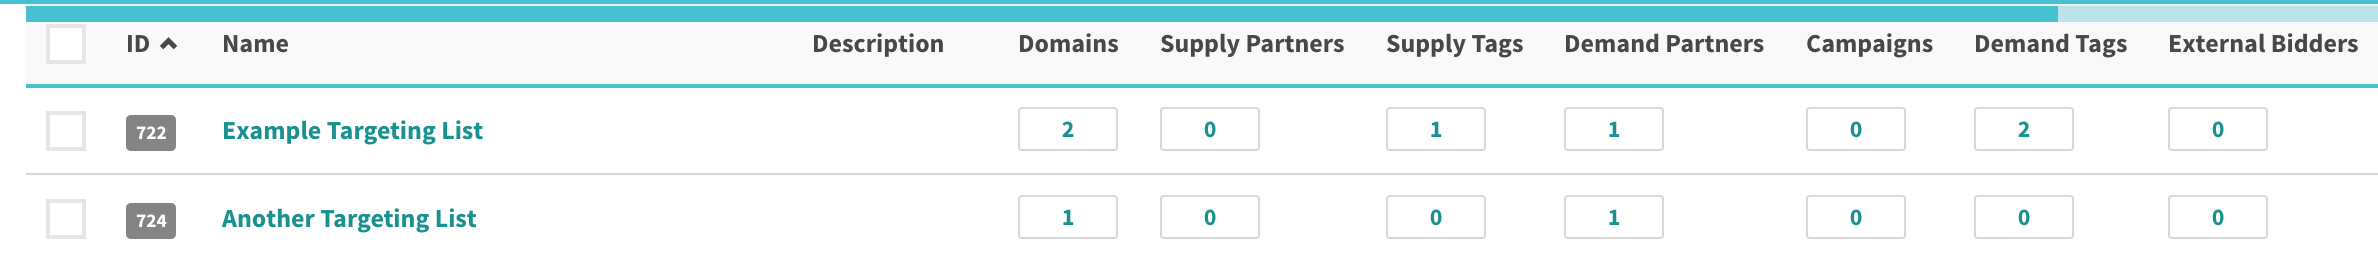 index table with links for supply partners, supply tags, demand partners, campaigns, demand tags, and external bidders